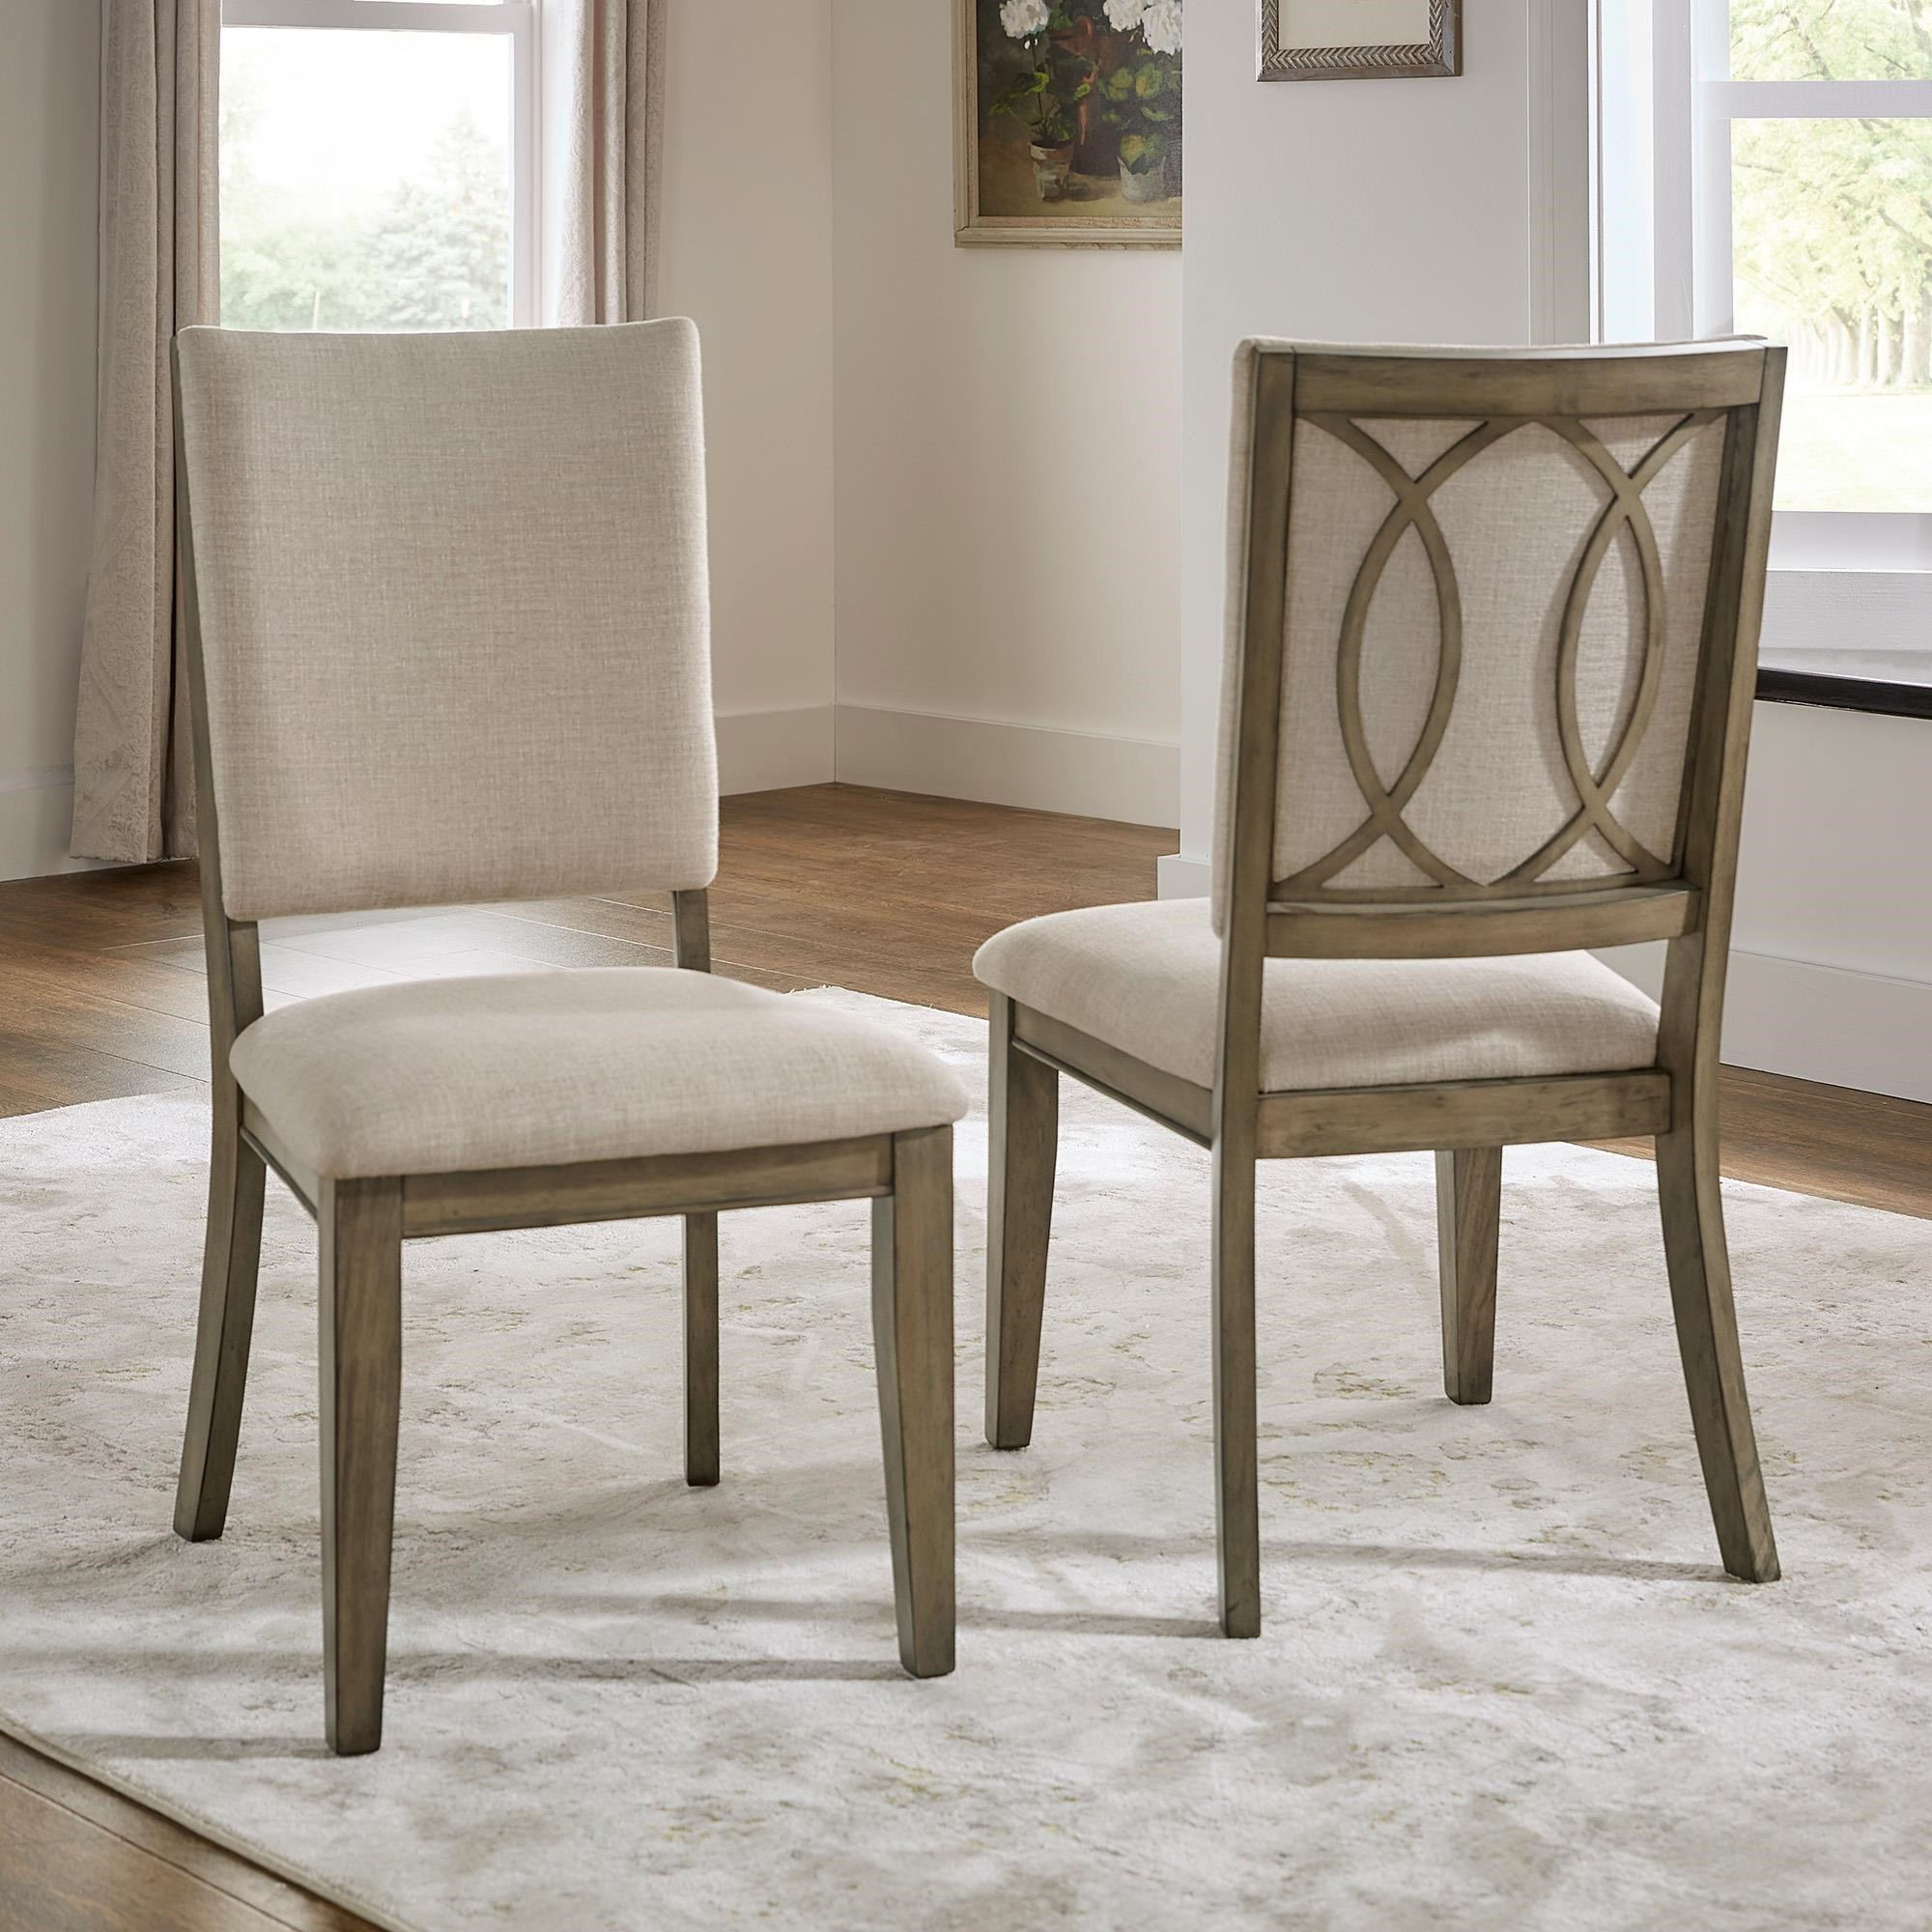 Price Side Chair by Homelegance at Darvin Furniture